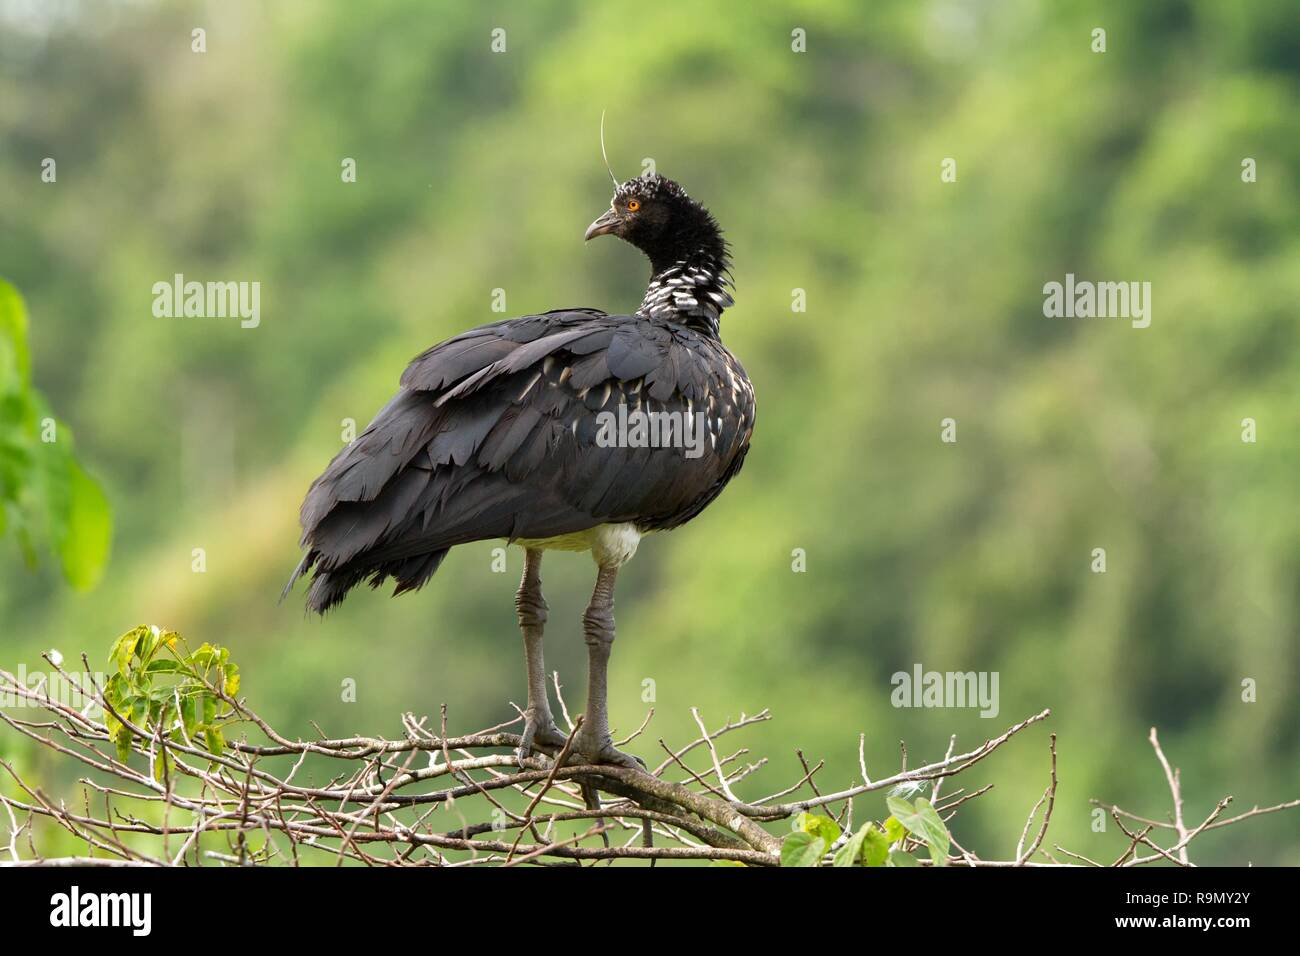 Horned Screamer - Anhima cornuta in Manu National park, Peru, bird from amazonian rain forest, green leaves in background, wildlife scene from nature - Stock Image